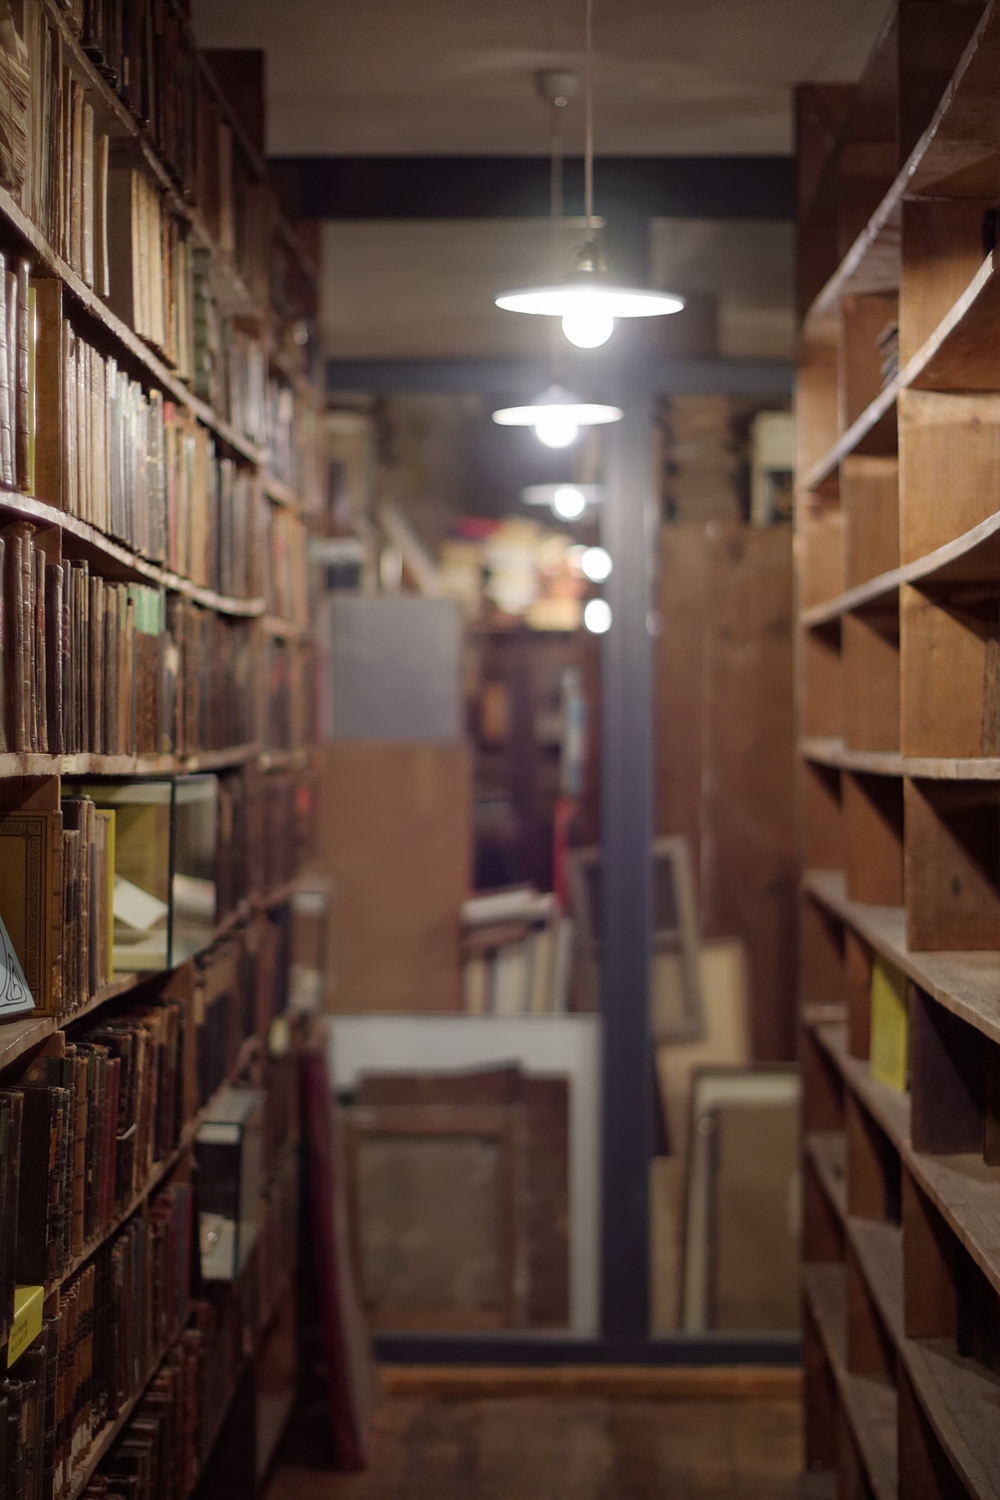 archives - photography, library - marcushammerschmitt | ello